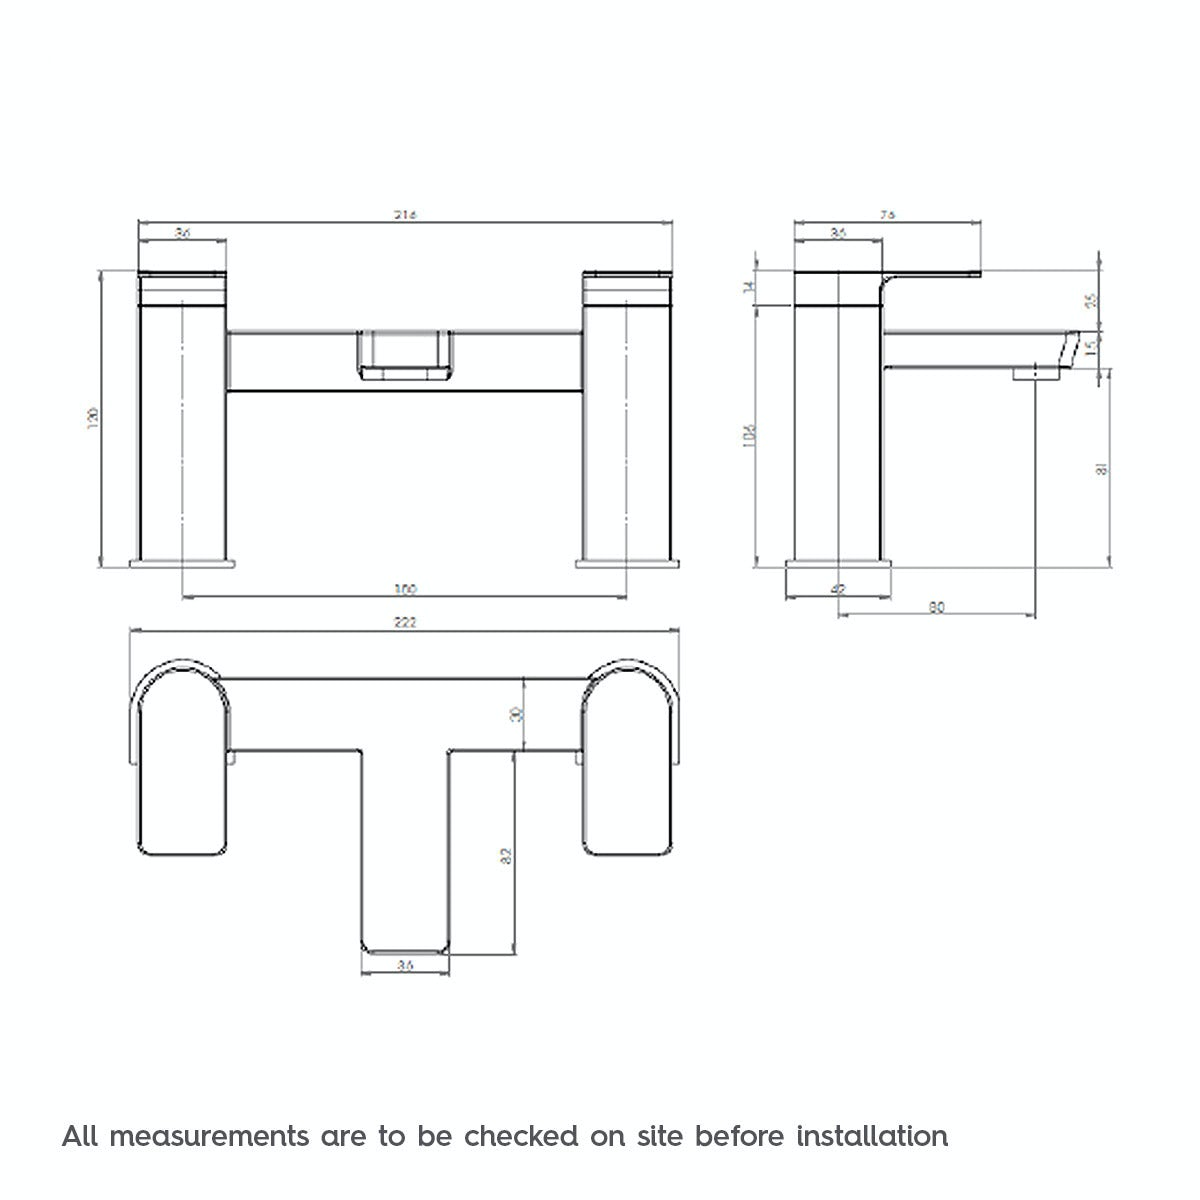 Dimensions for Mode Hardy bath mixer tap